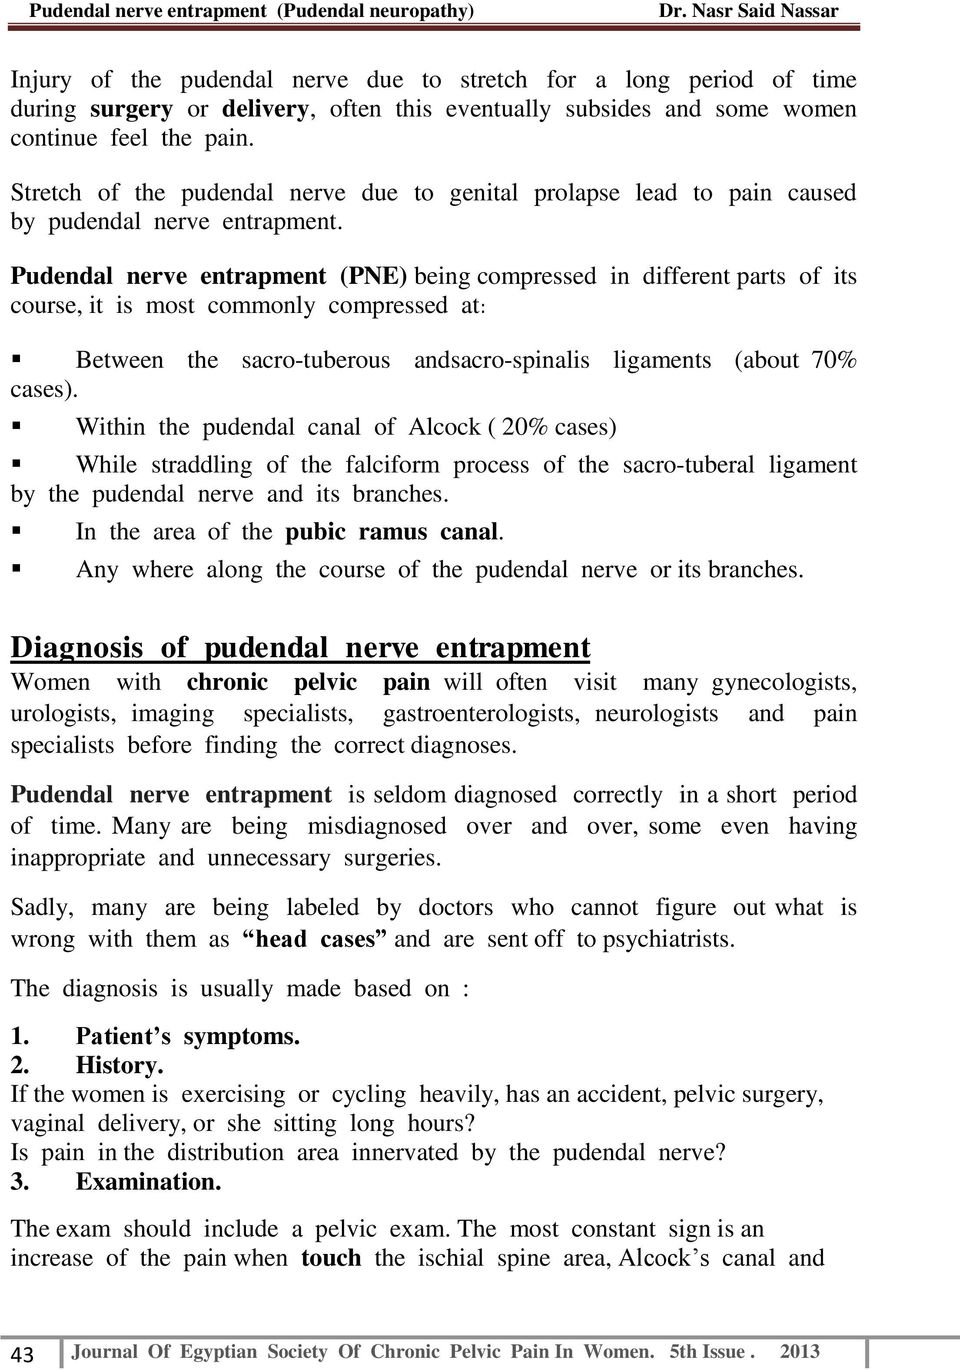 Pudendal Neuropathy Or Pudendal Nerve Entrapment Pne Pdf